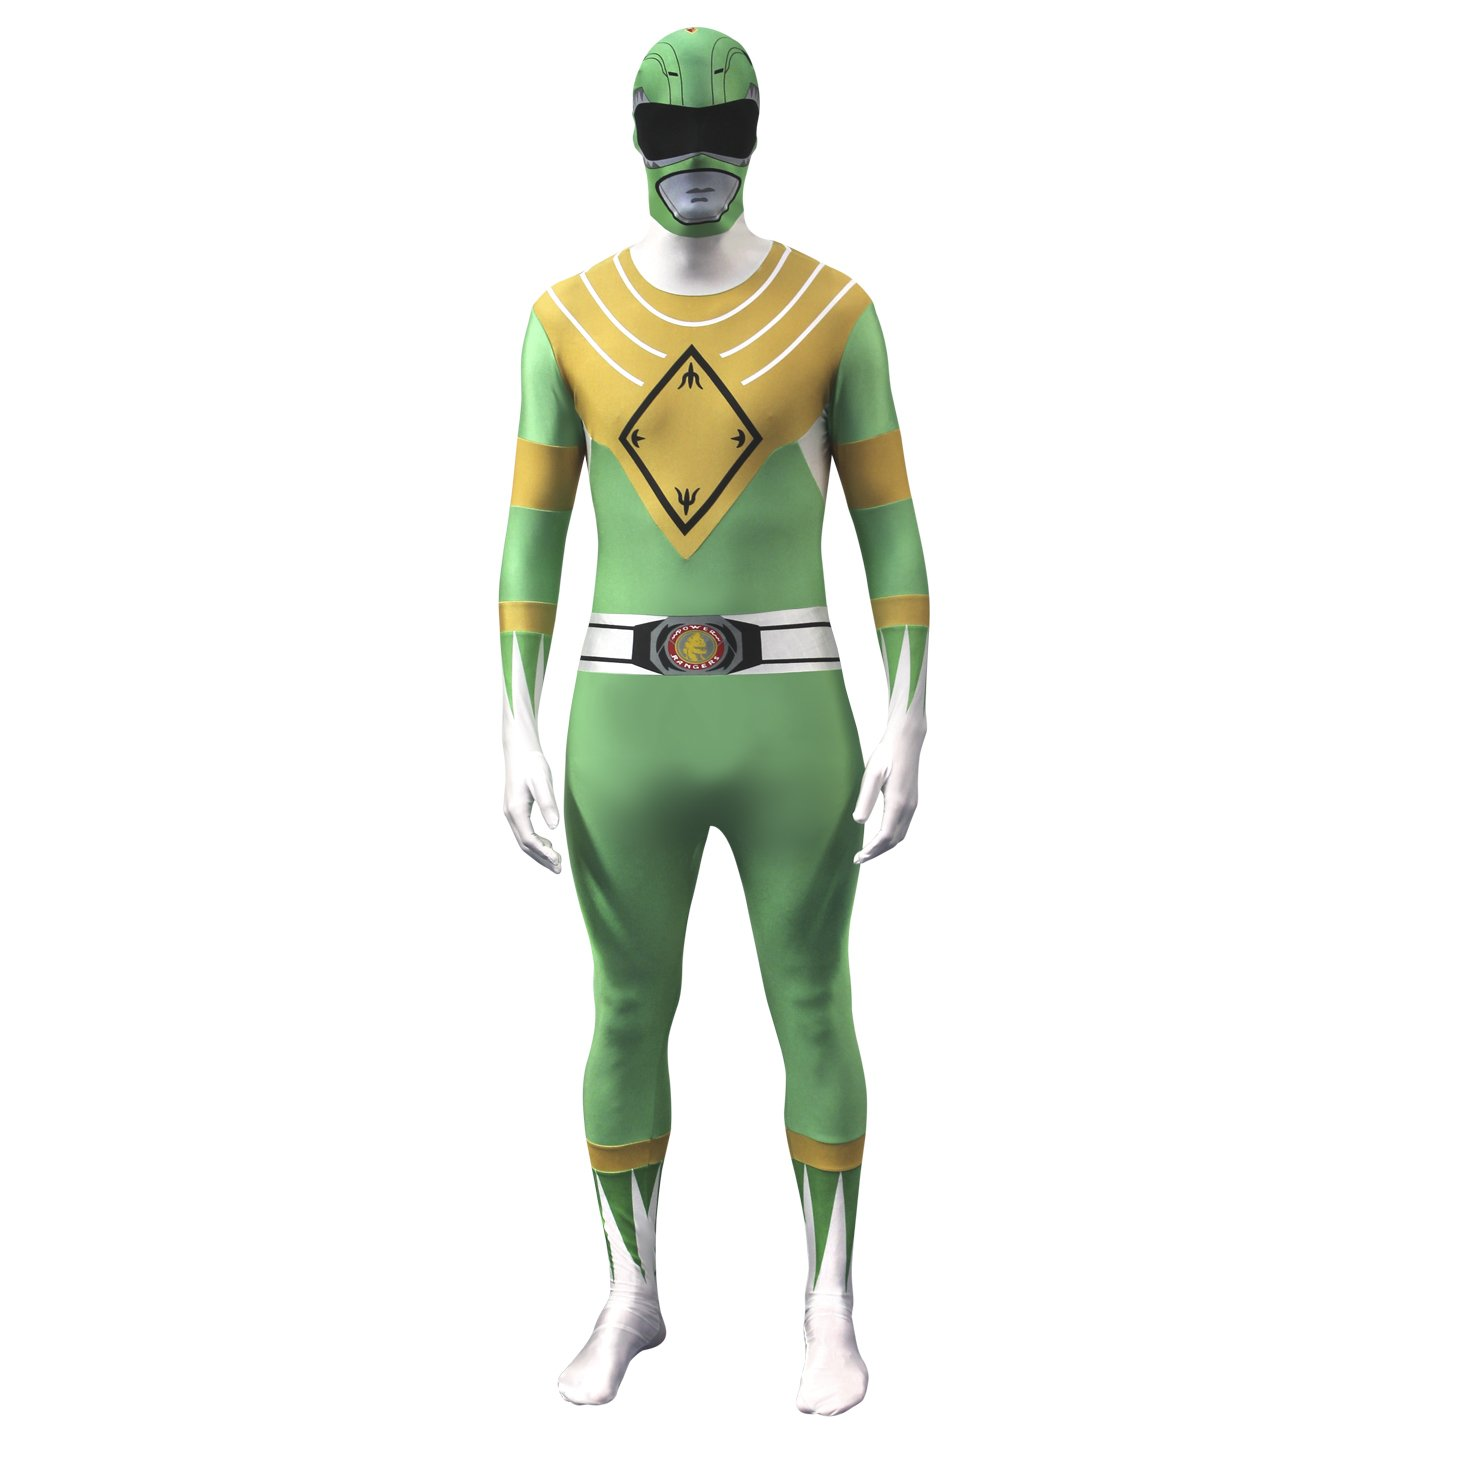 Morphsuits Adulti ufficiali Verde Traje de Power Ranger - Grande 5 ...